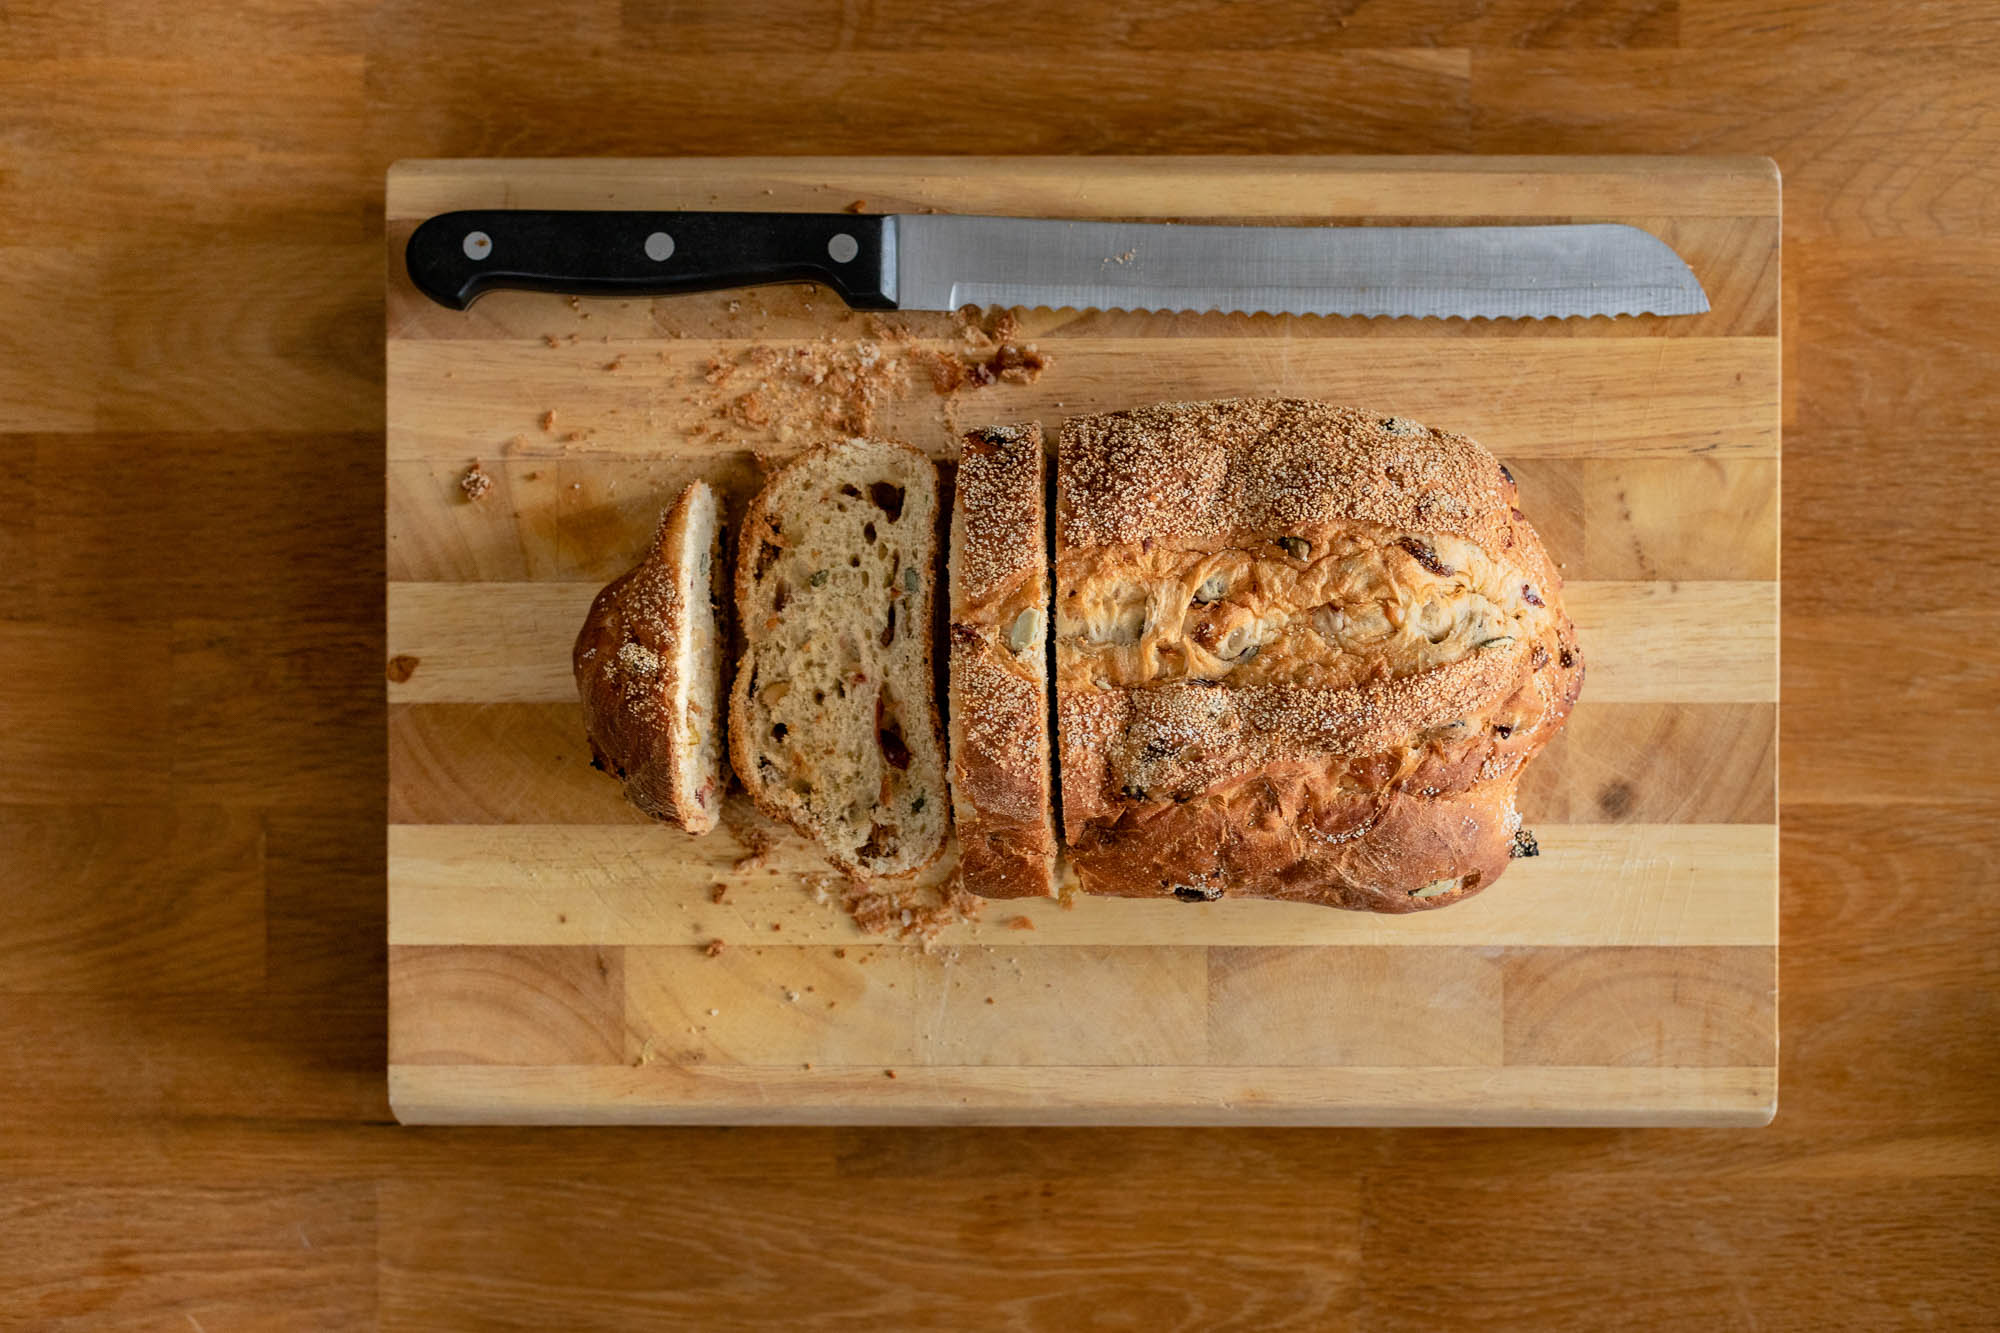 Overhead view of bread on a wooden chopping board